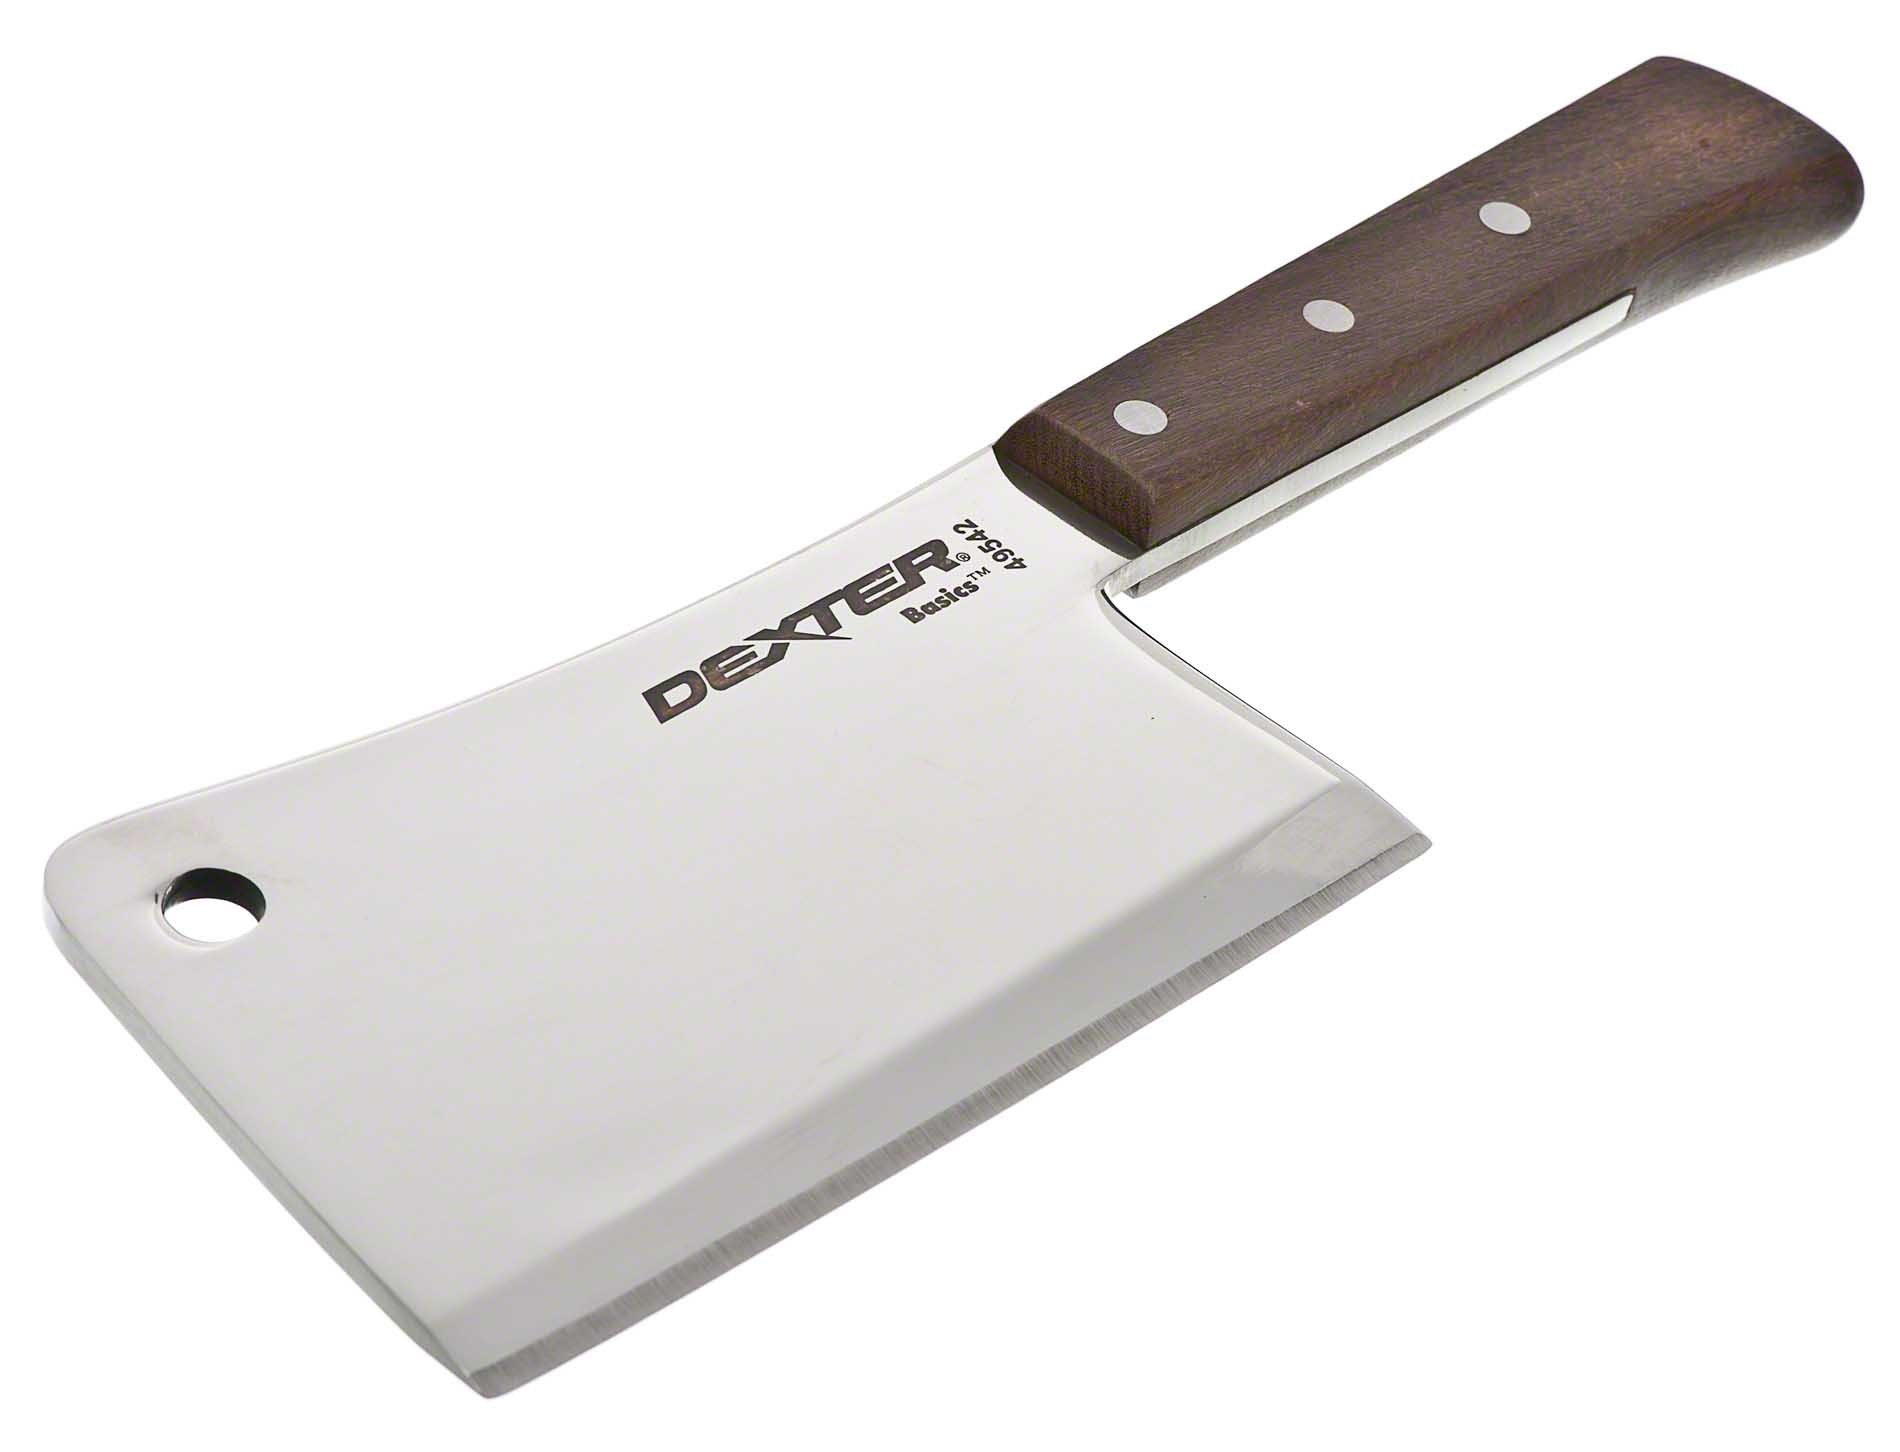 "Dexter Russell  49542 6"" Cleaver - Basics Series by Dexter-Russell (Image #1)"